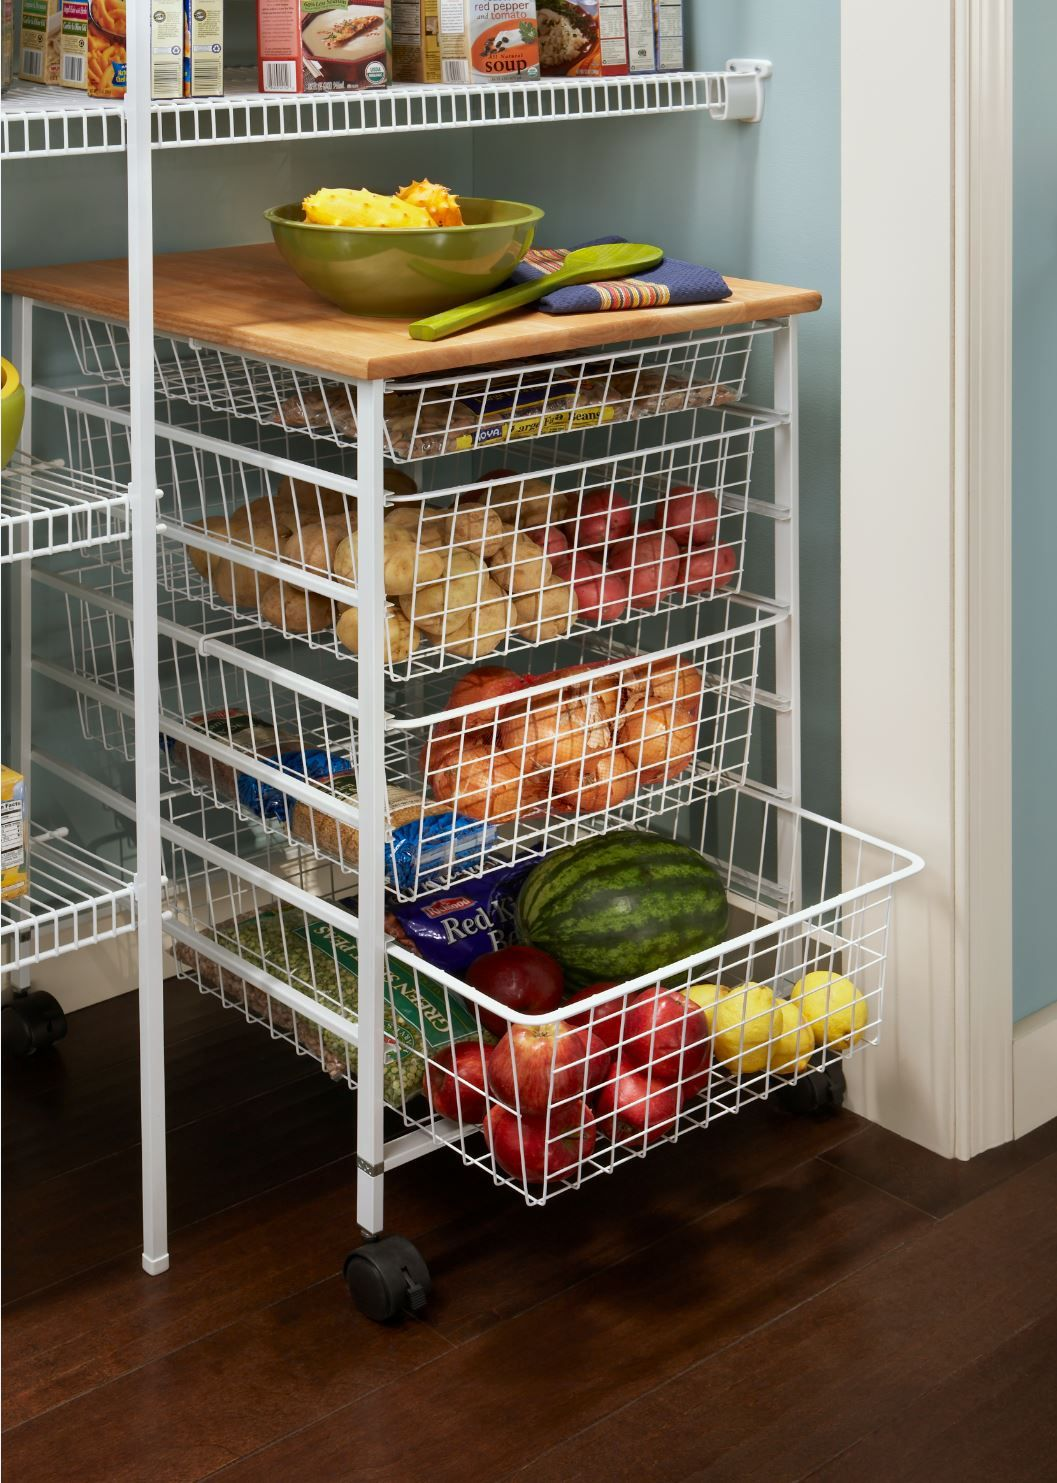 A Handy Drawer Kit Works Great For Quick, Easy Access For All Of Your  Cooking Needs #ClosetMaid